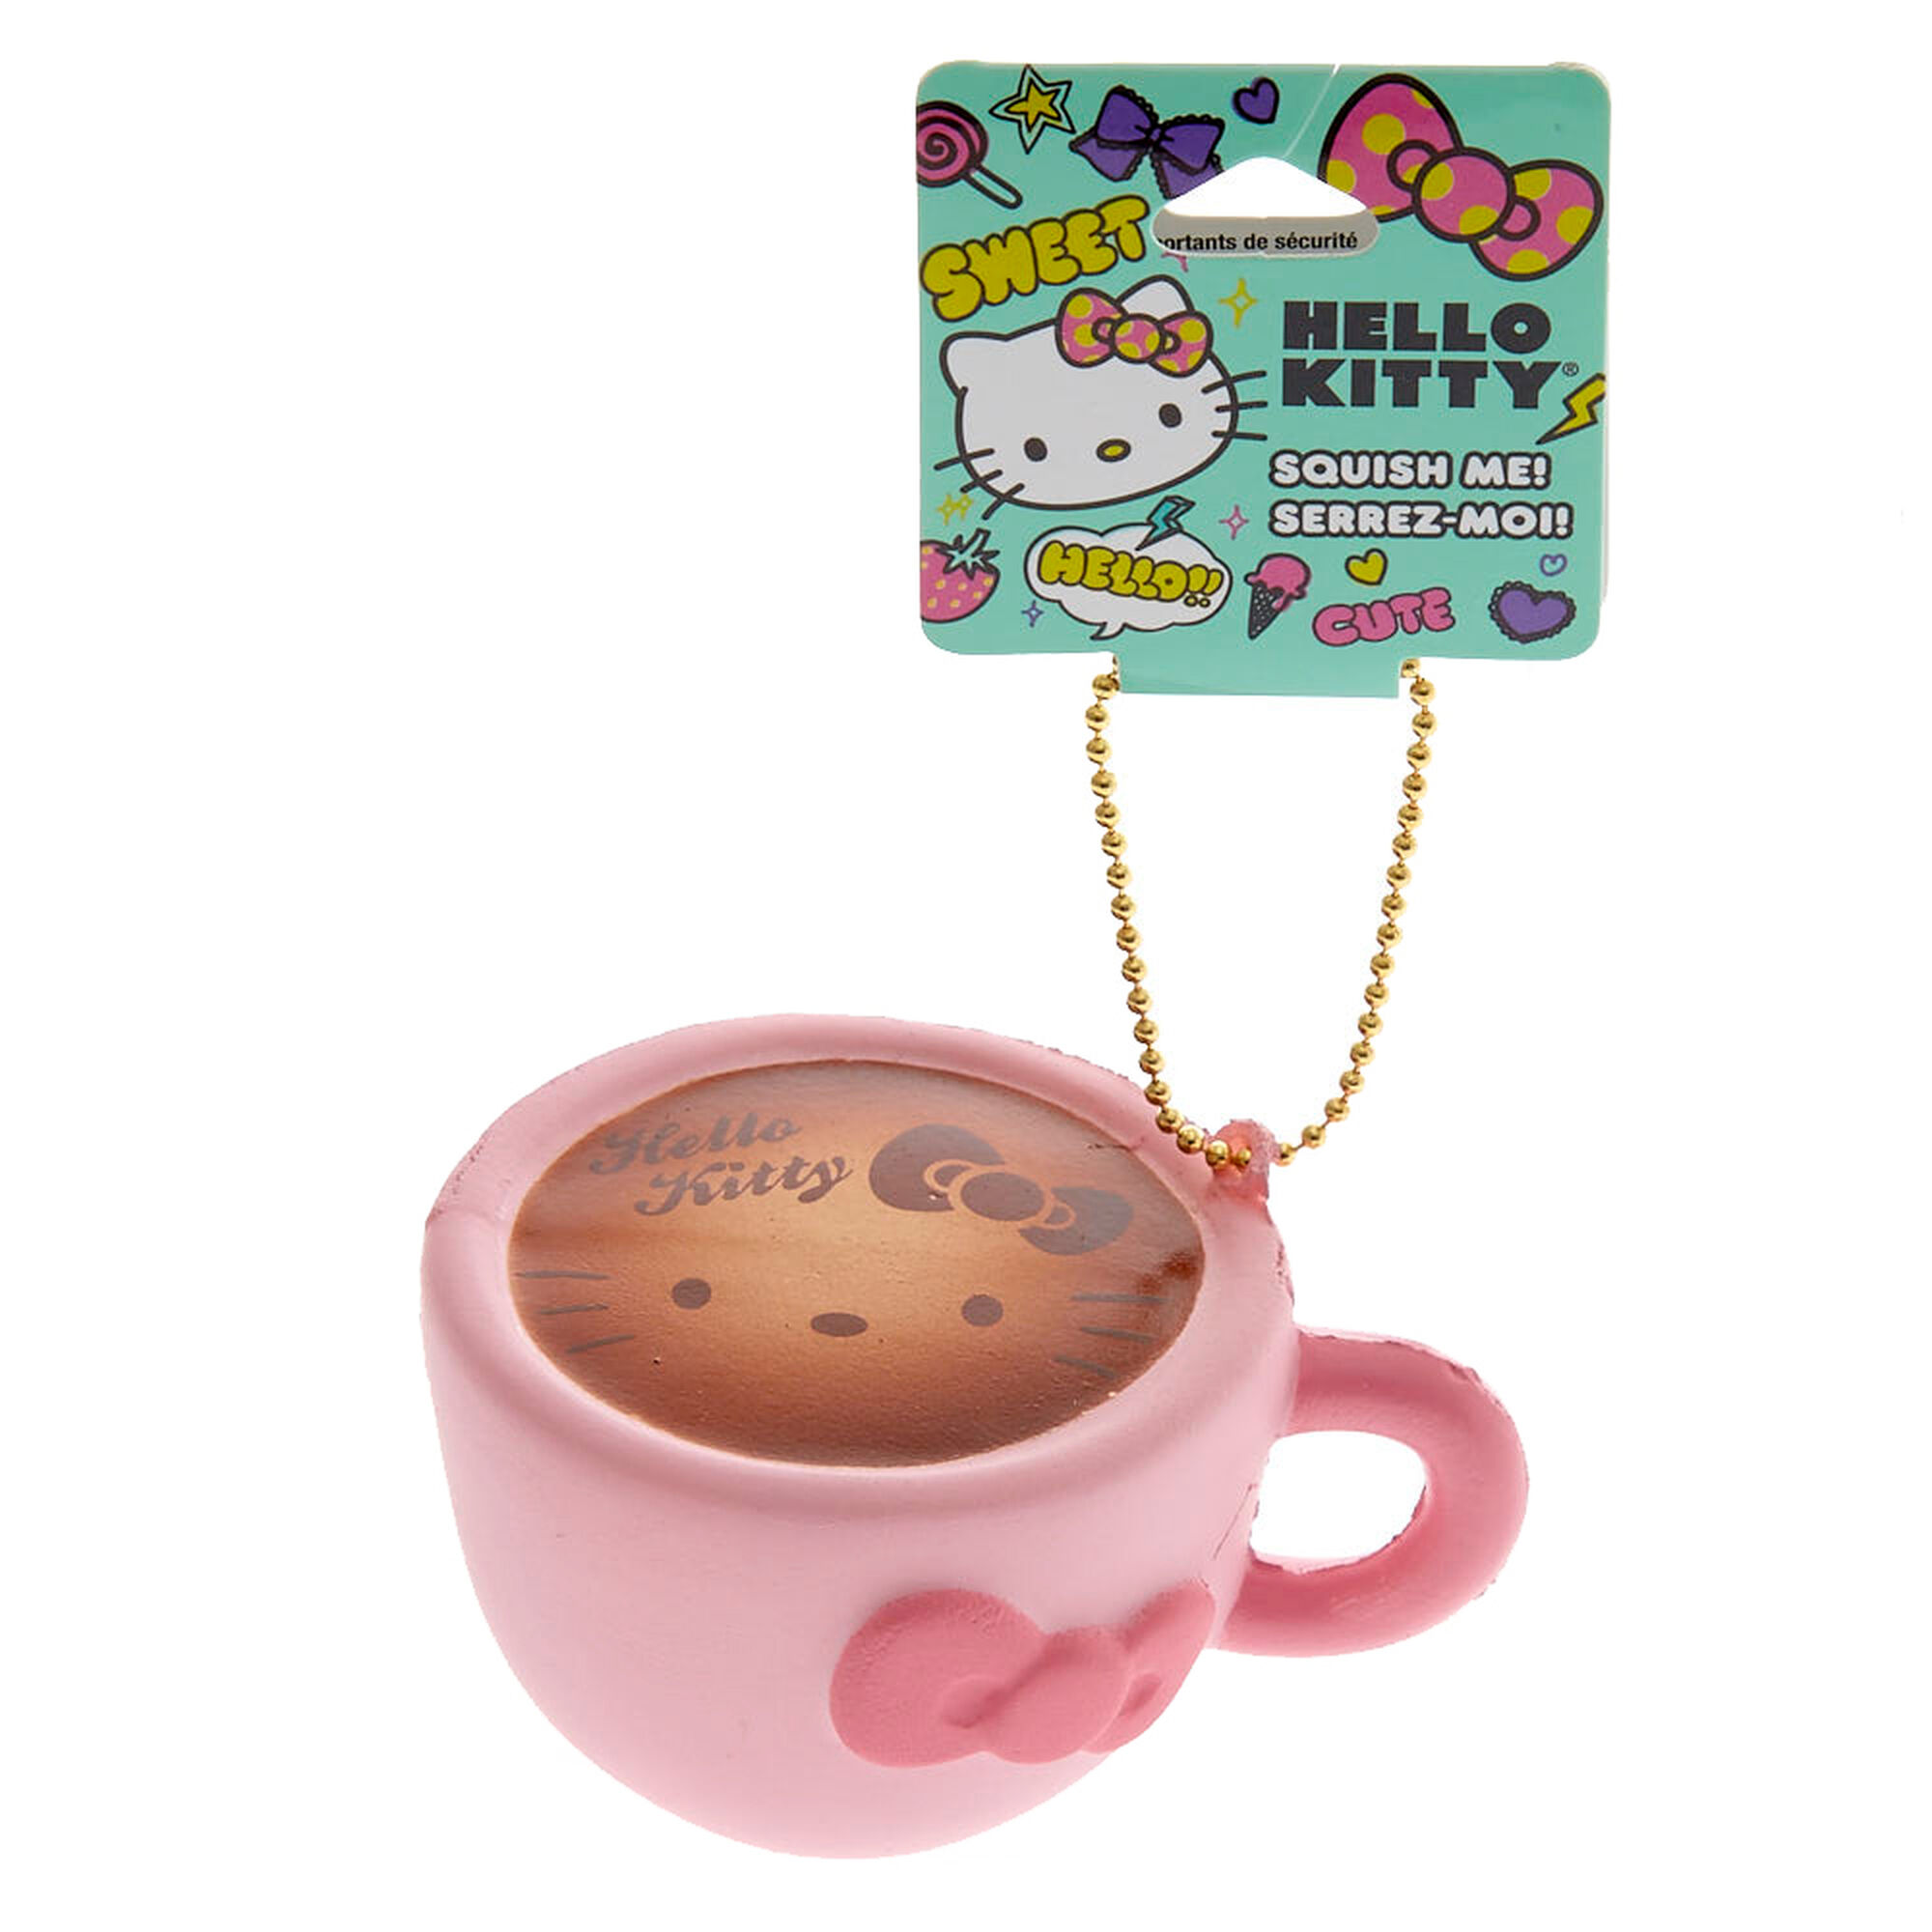 Squishy Toys At Toys R Us : Hello Kitty Squishy: Teacup Claire s CA